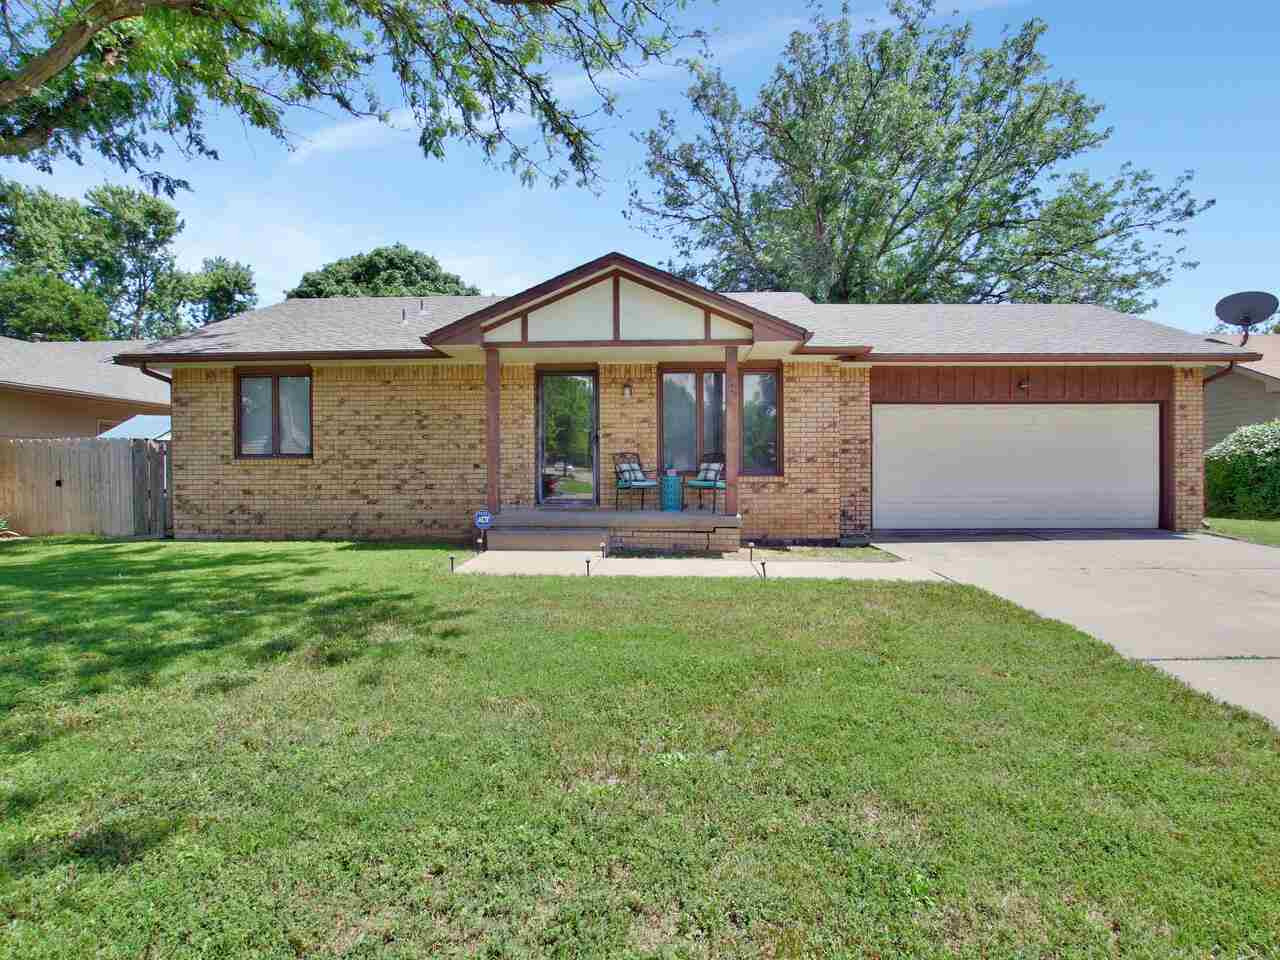 Move in ready 2 bedroom, 1 bath home in Bel Aire with a full basement and oversized 2 car garage. Ex